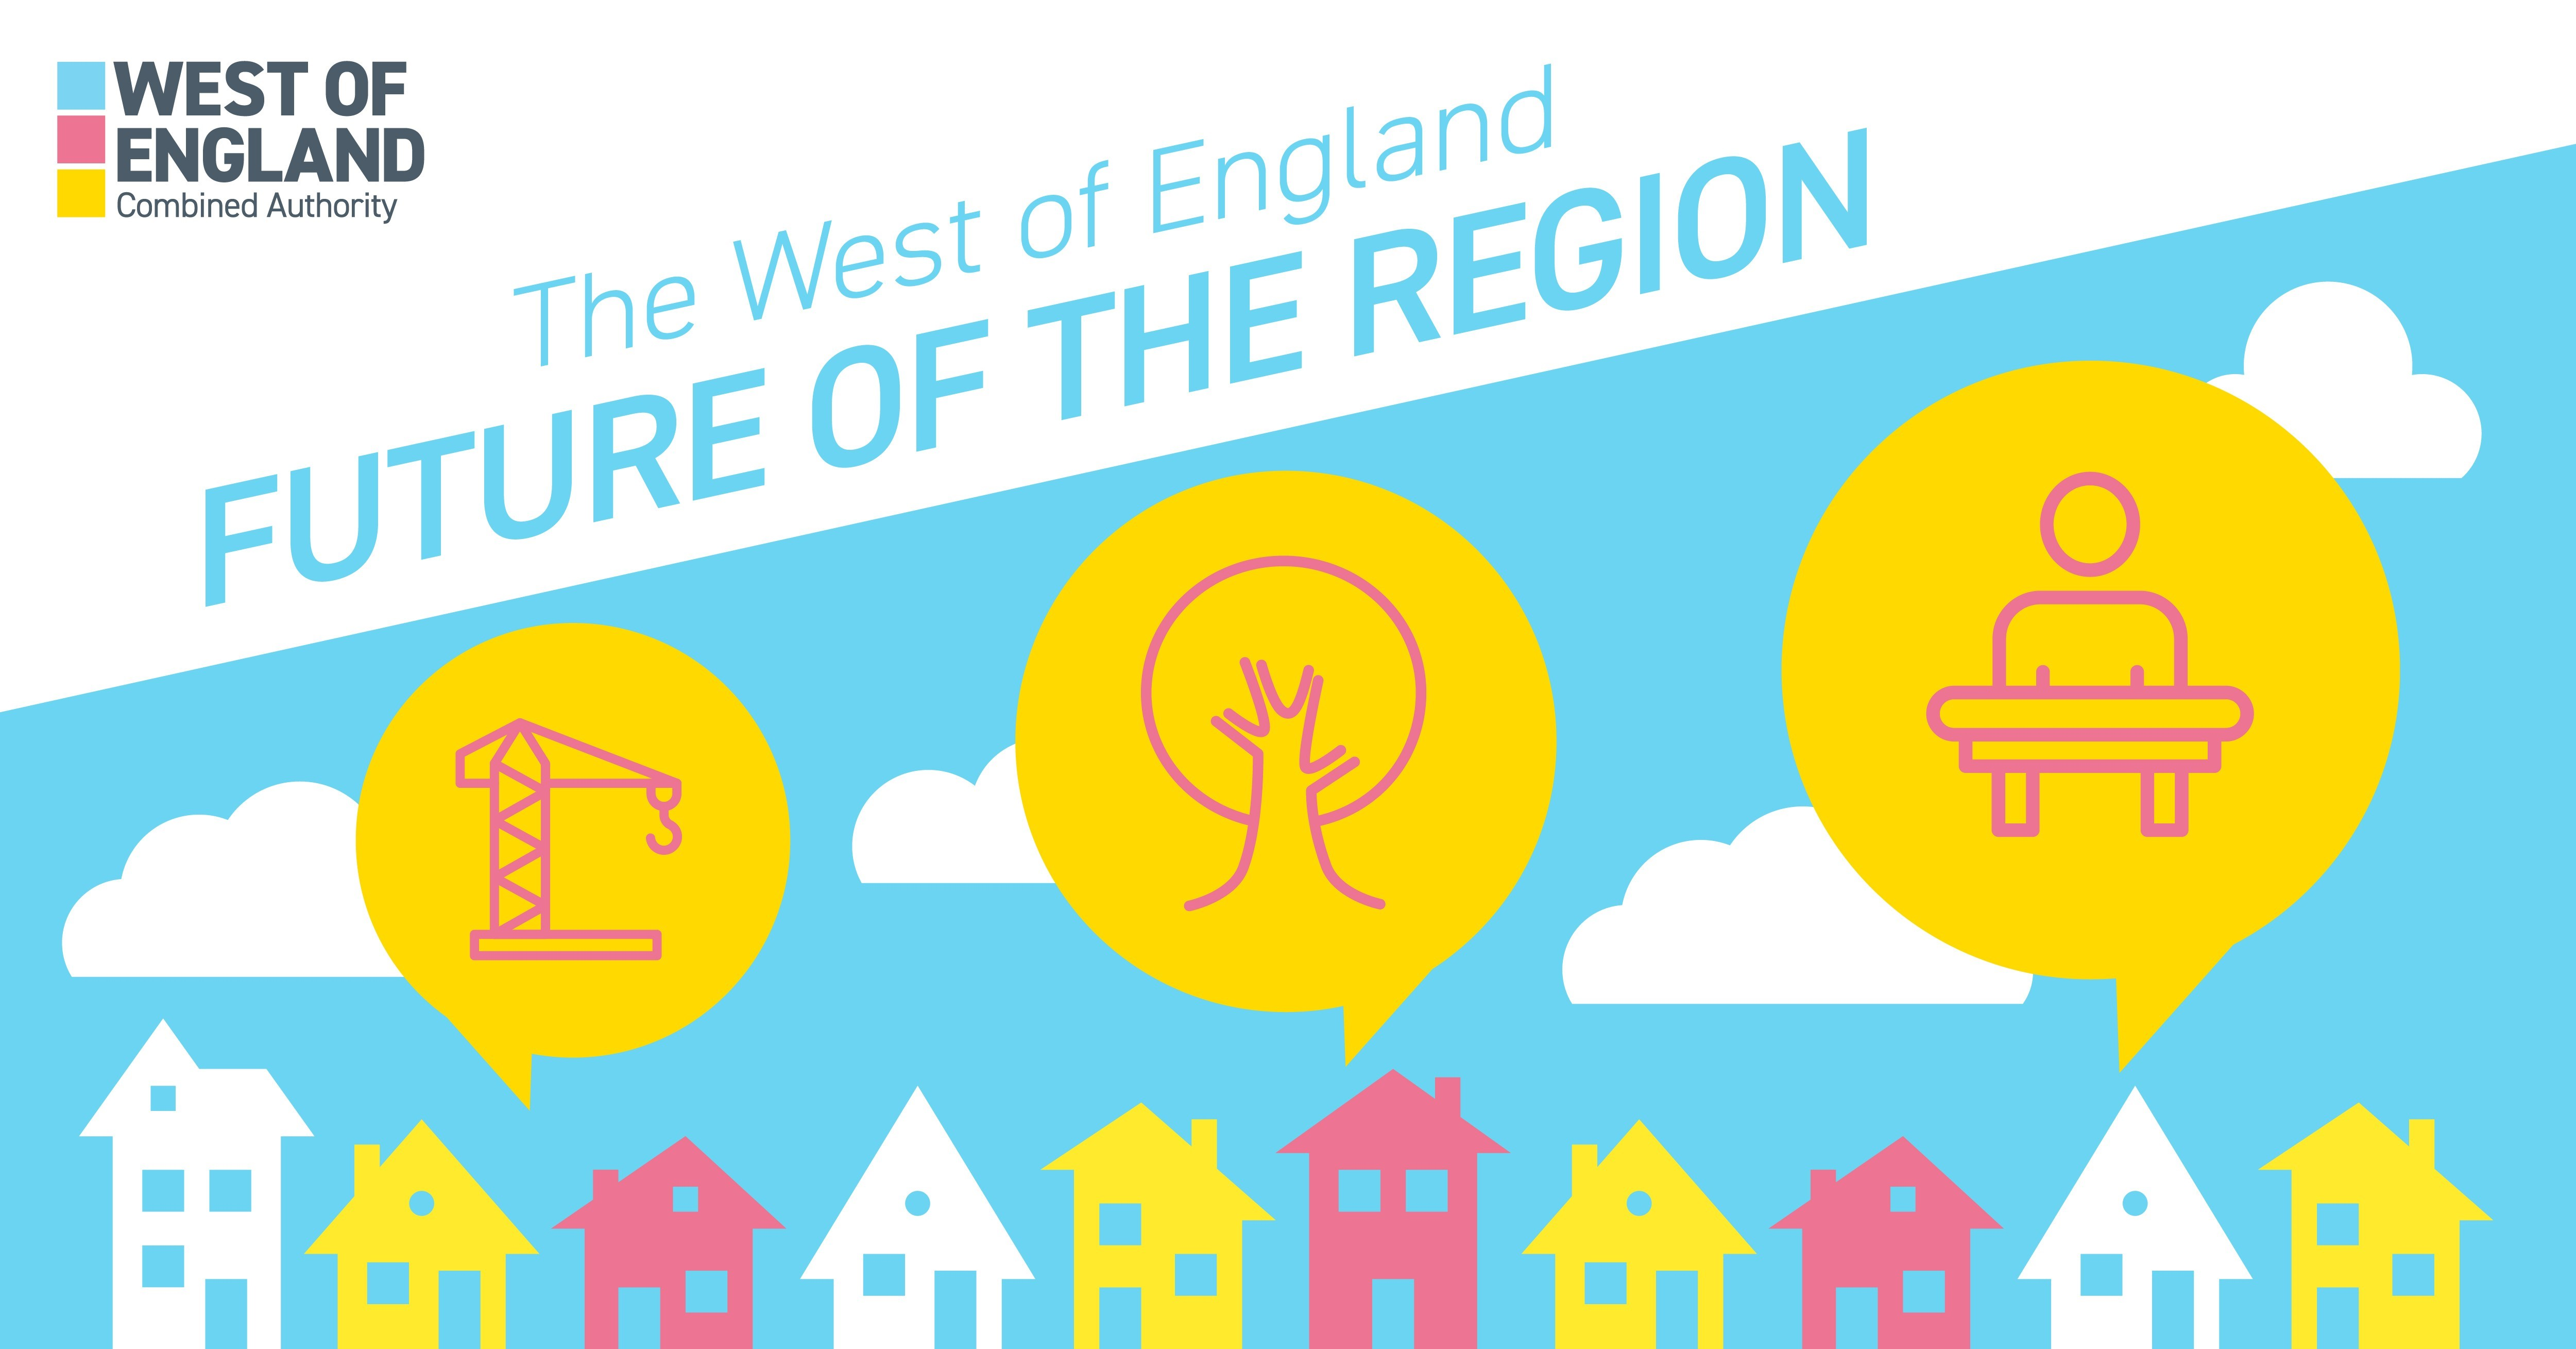 The West of England Future of the region image